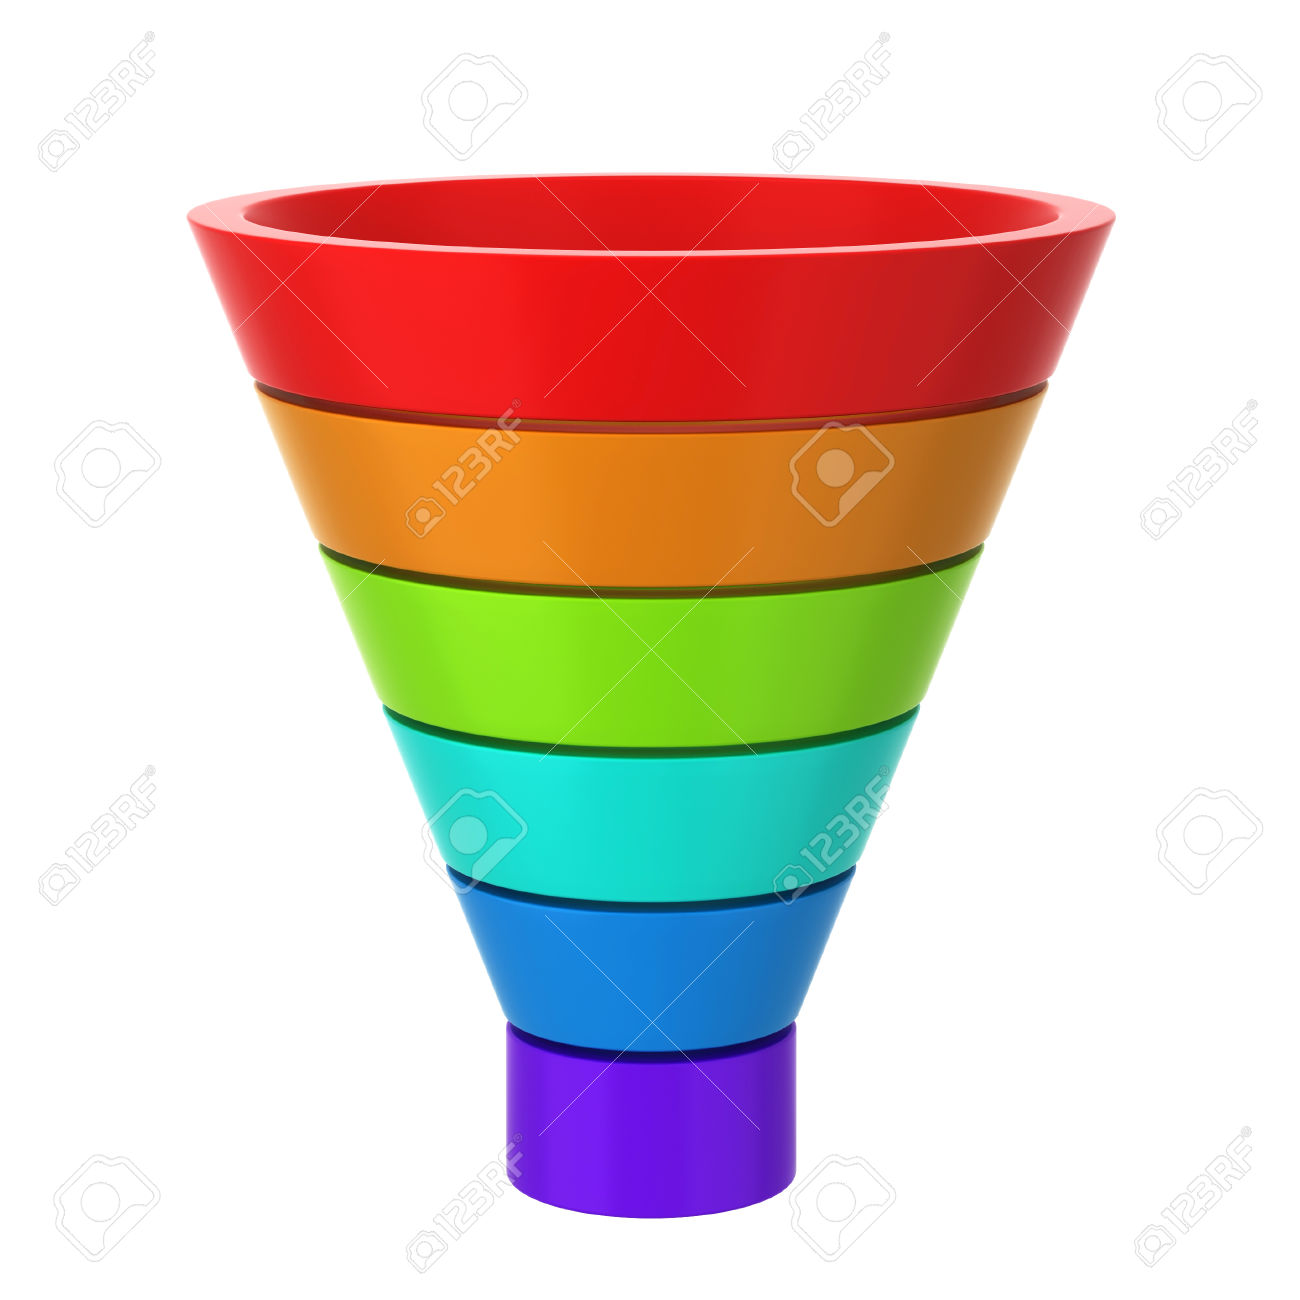 Funnel clipart #10, Download drawings